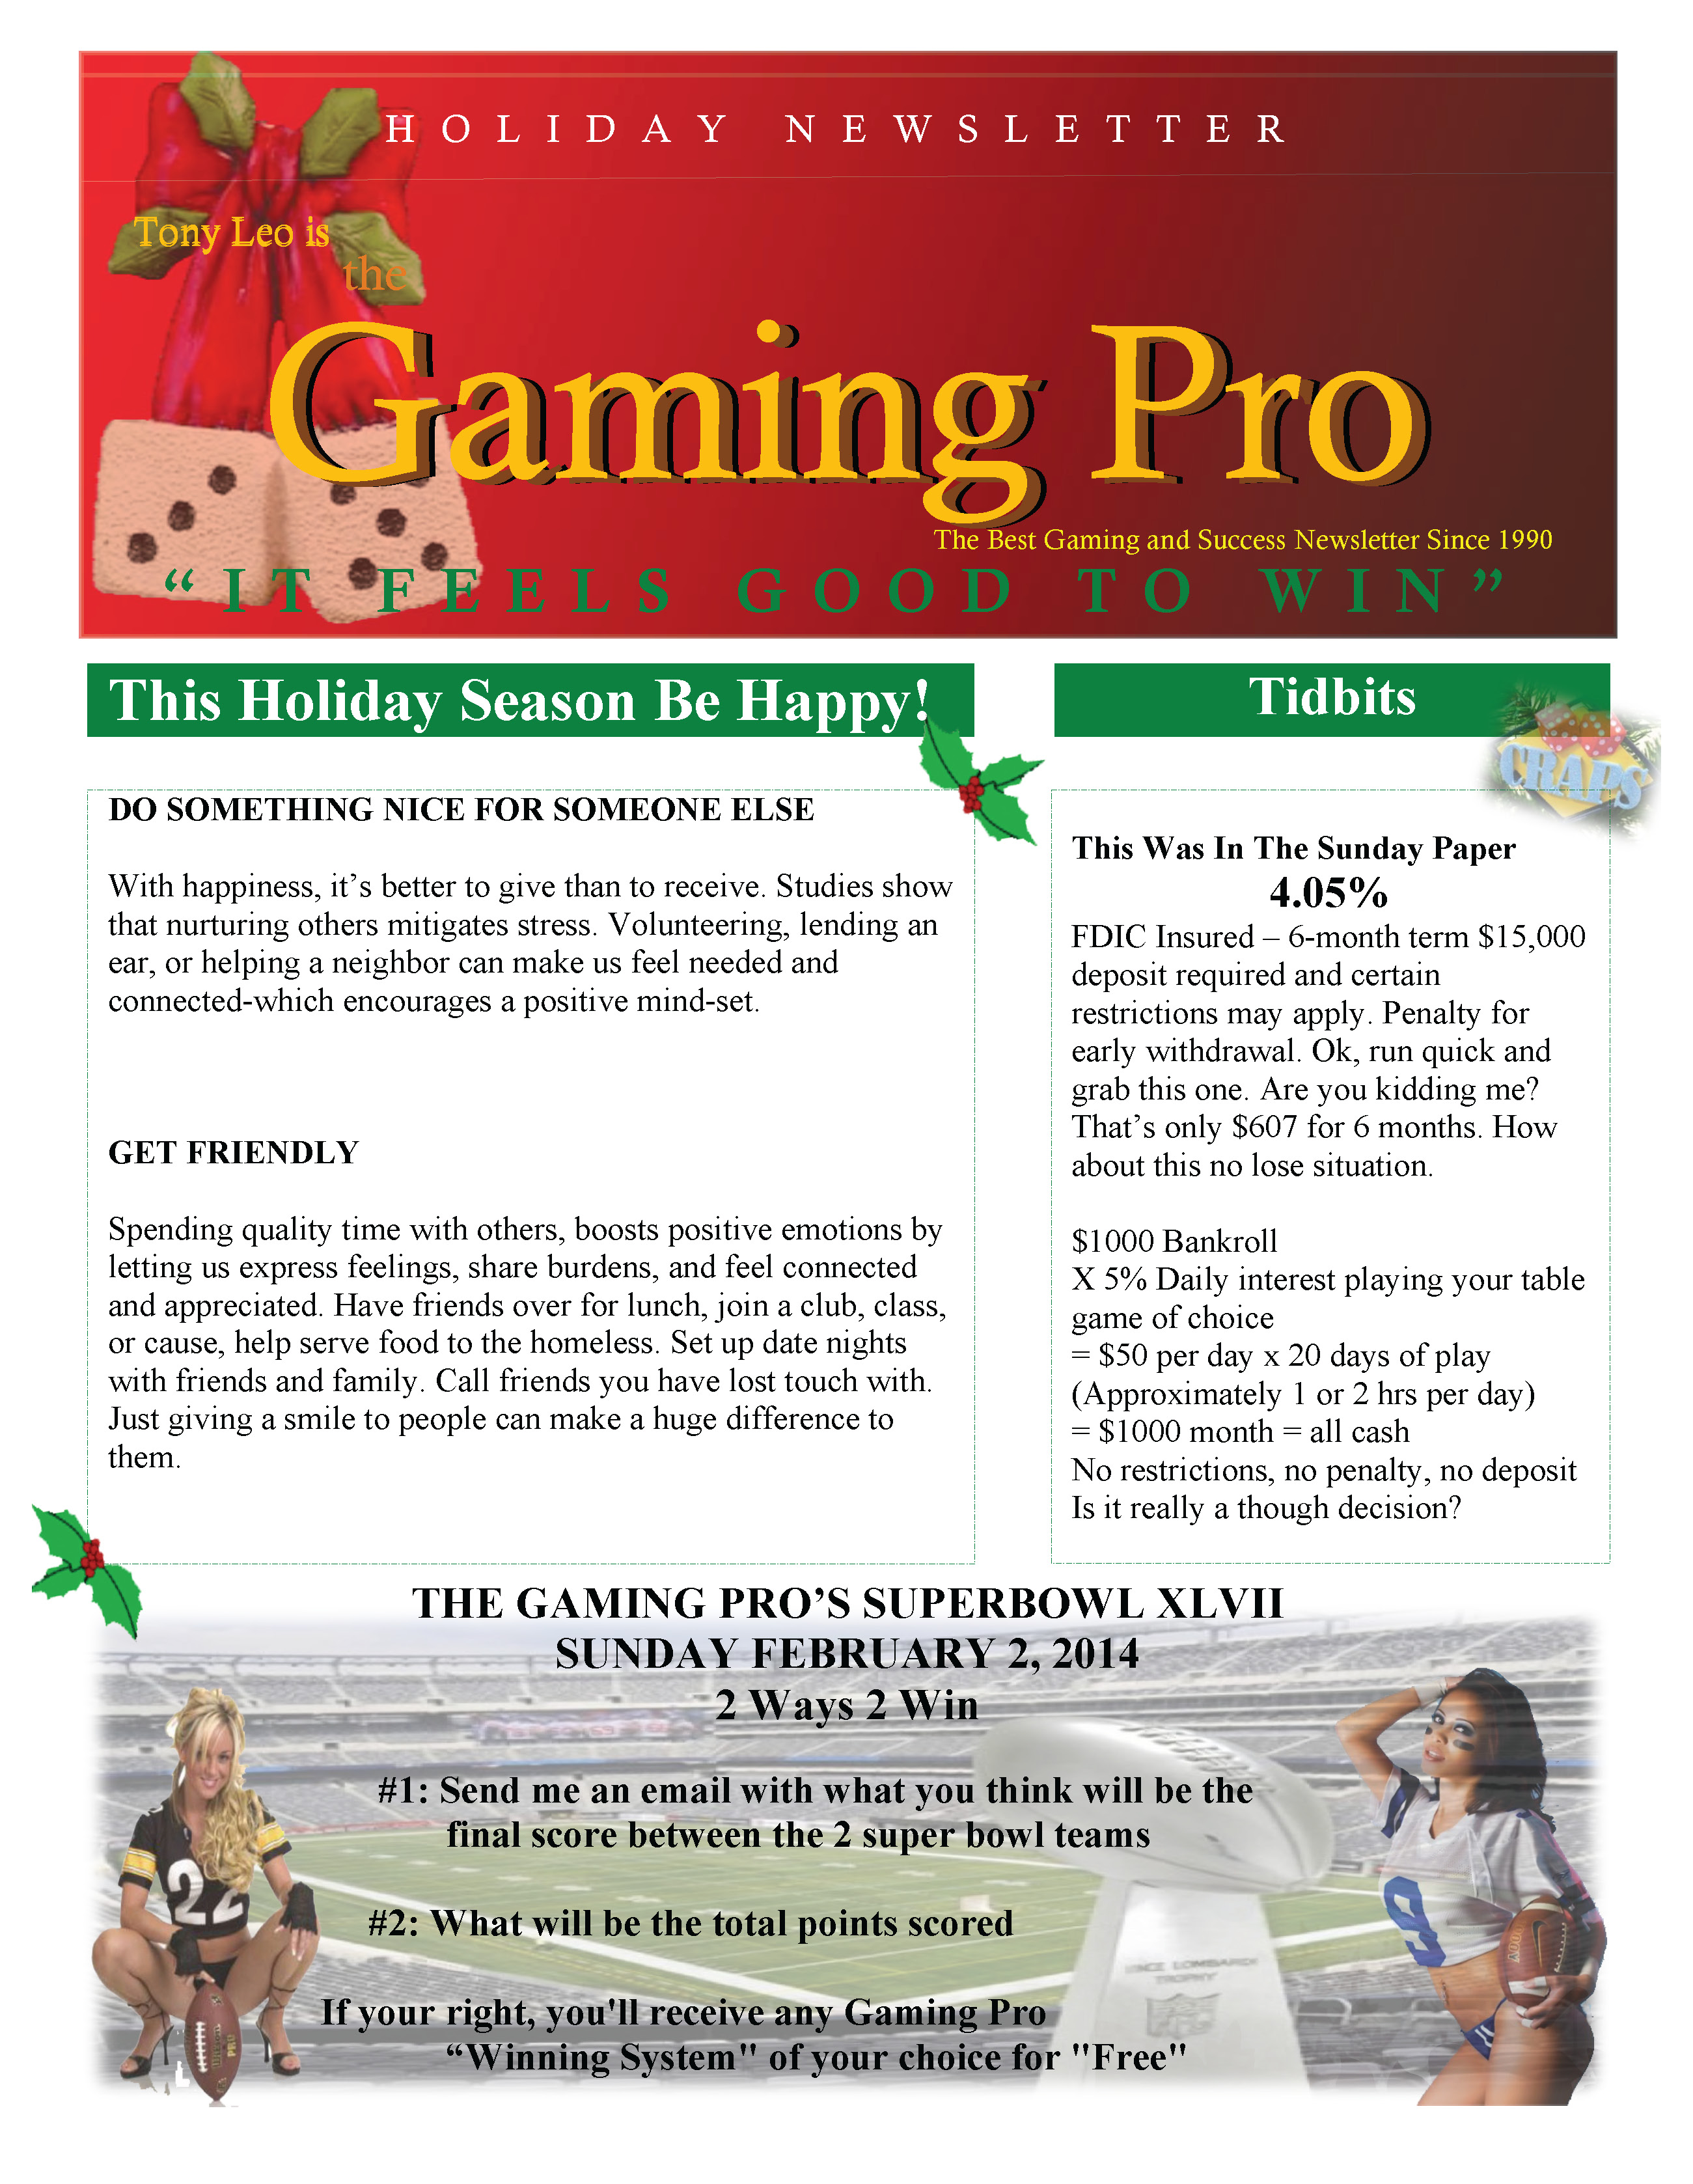 Holiday Newsletter The Gaming Pro – Holiday Newsletter